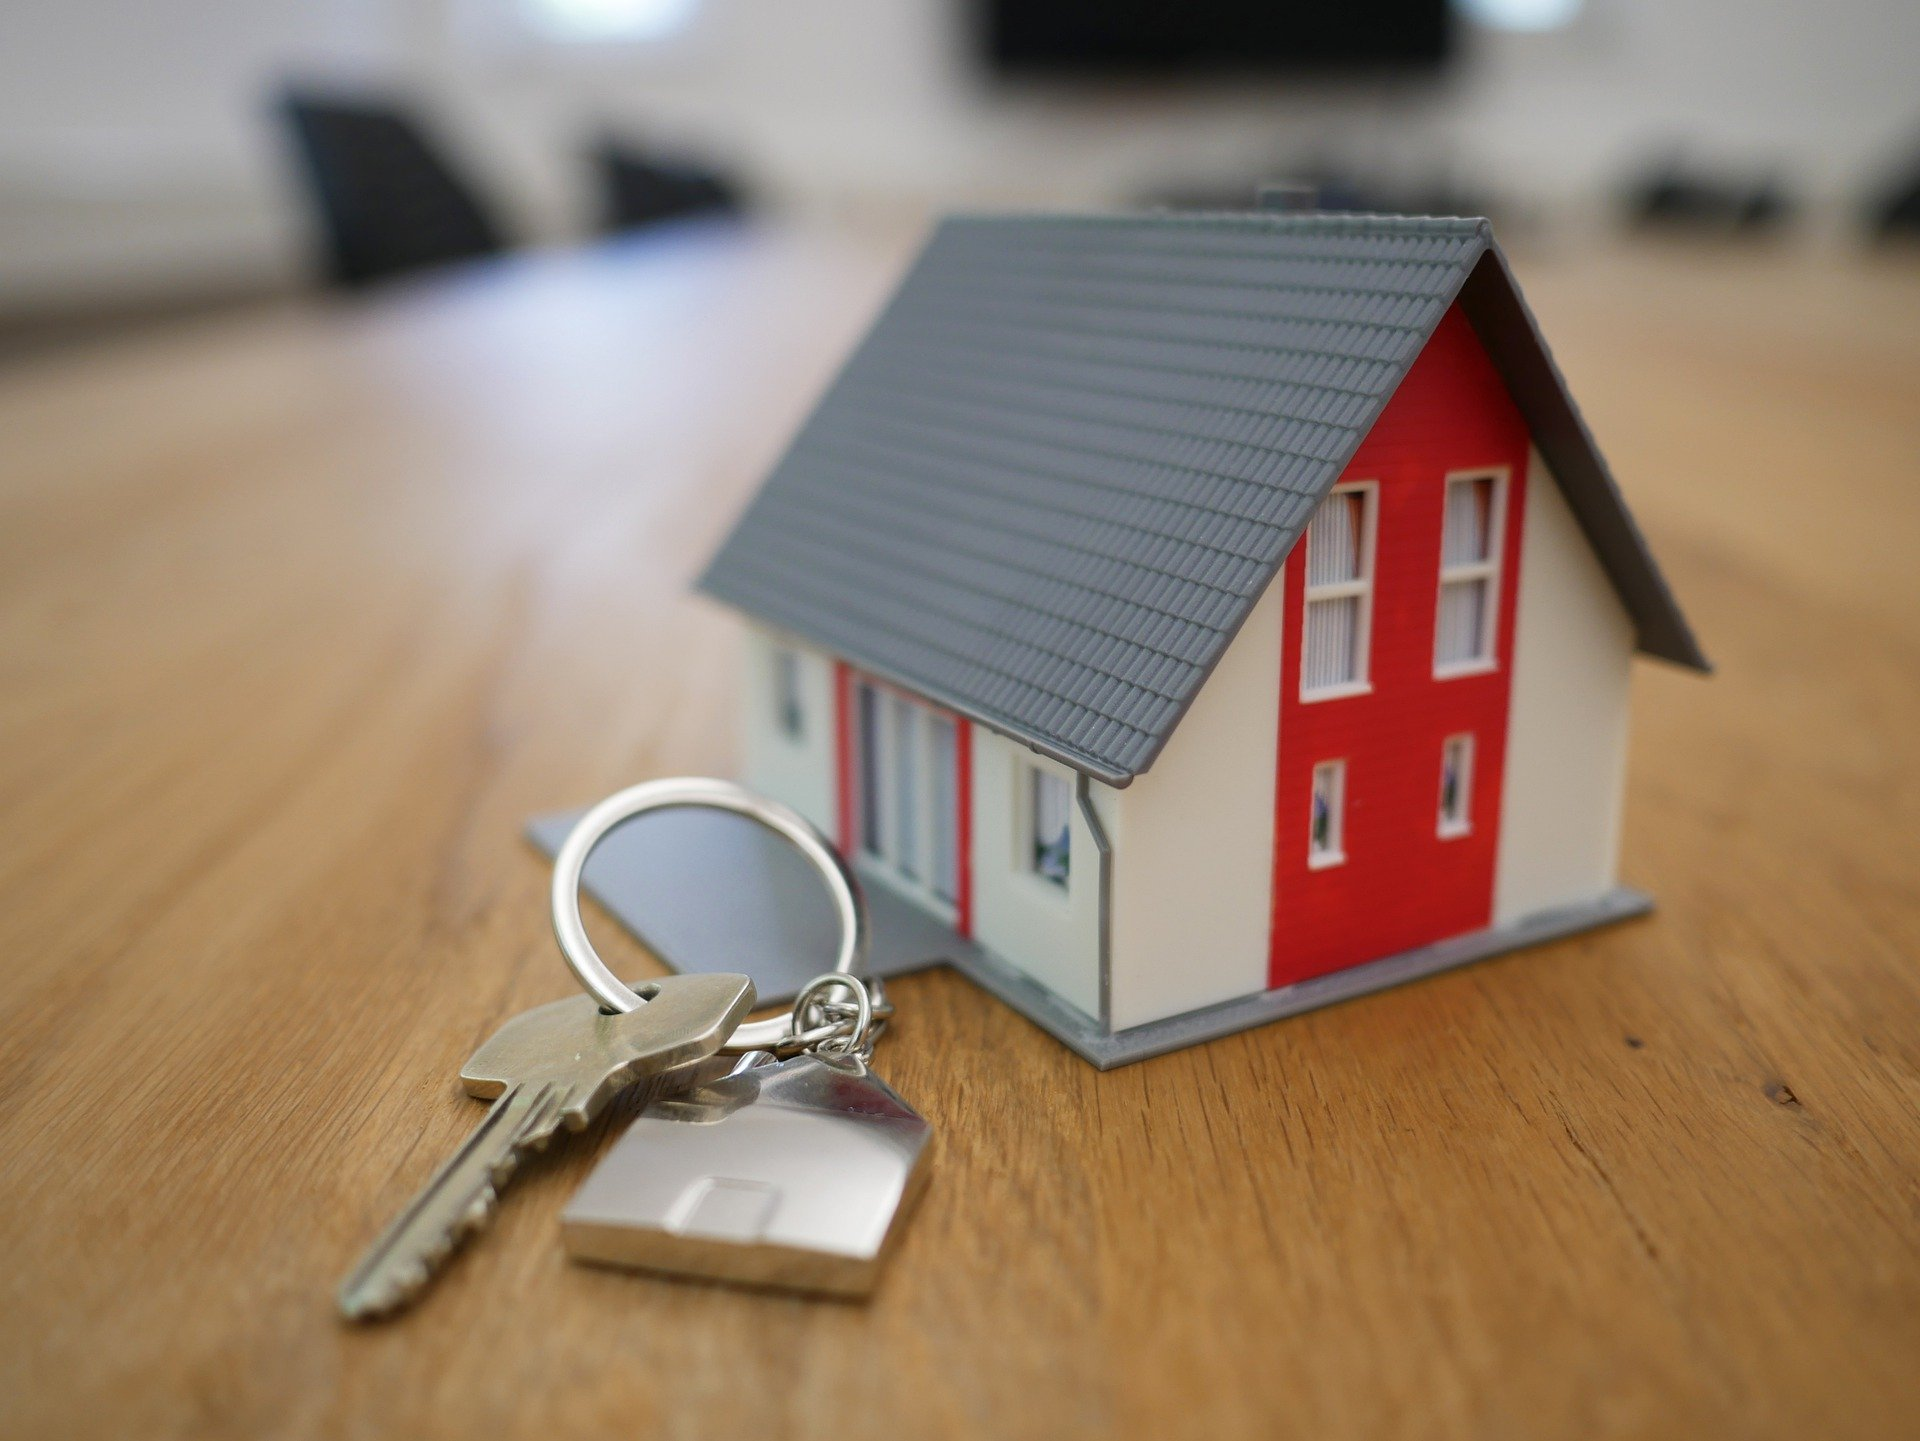 A stock image of a model house on a table with a set of keys